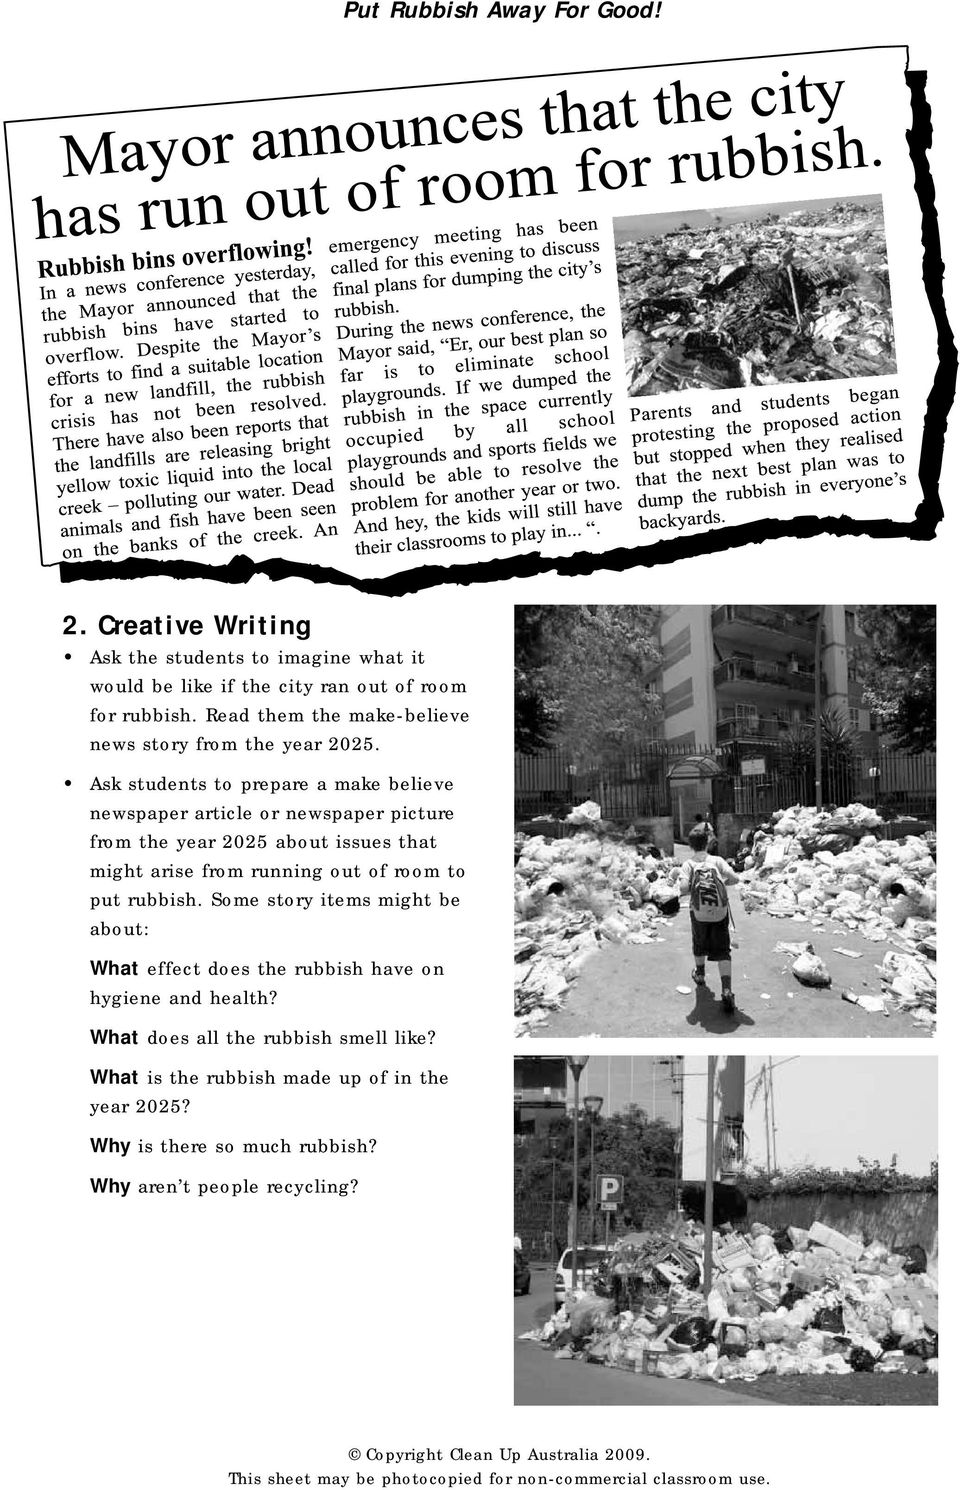 Ask students to prepare a make believe newspaper article or newspaper picture from the year 2025 about issues that might arise from running